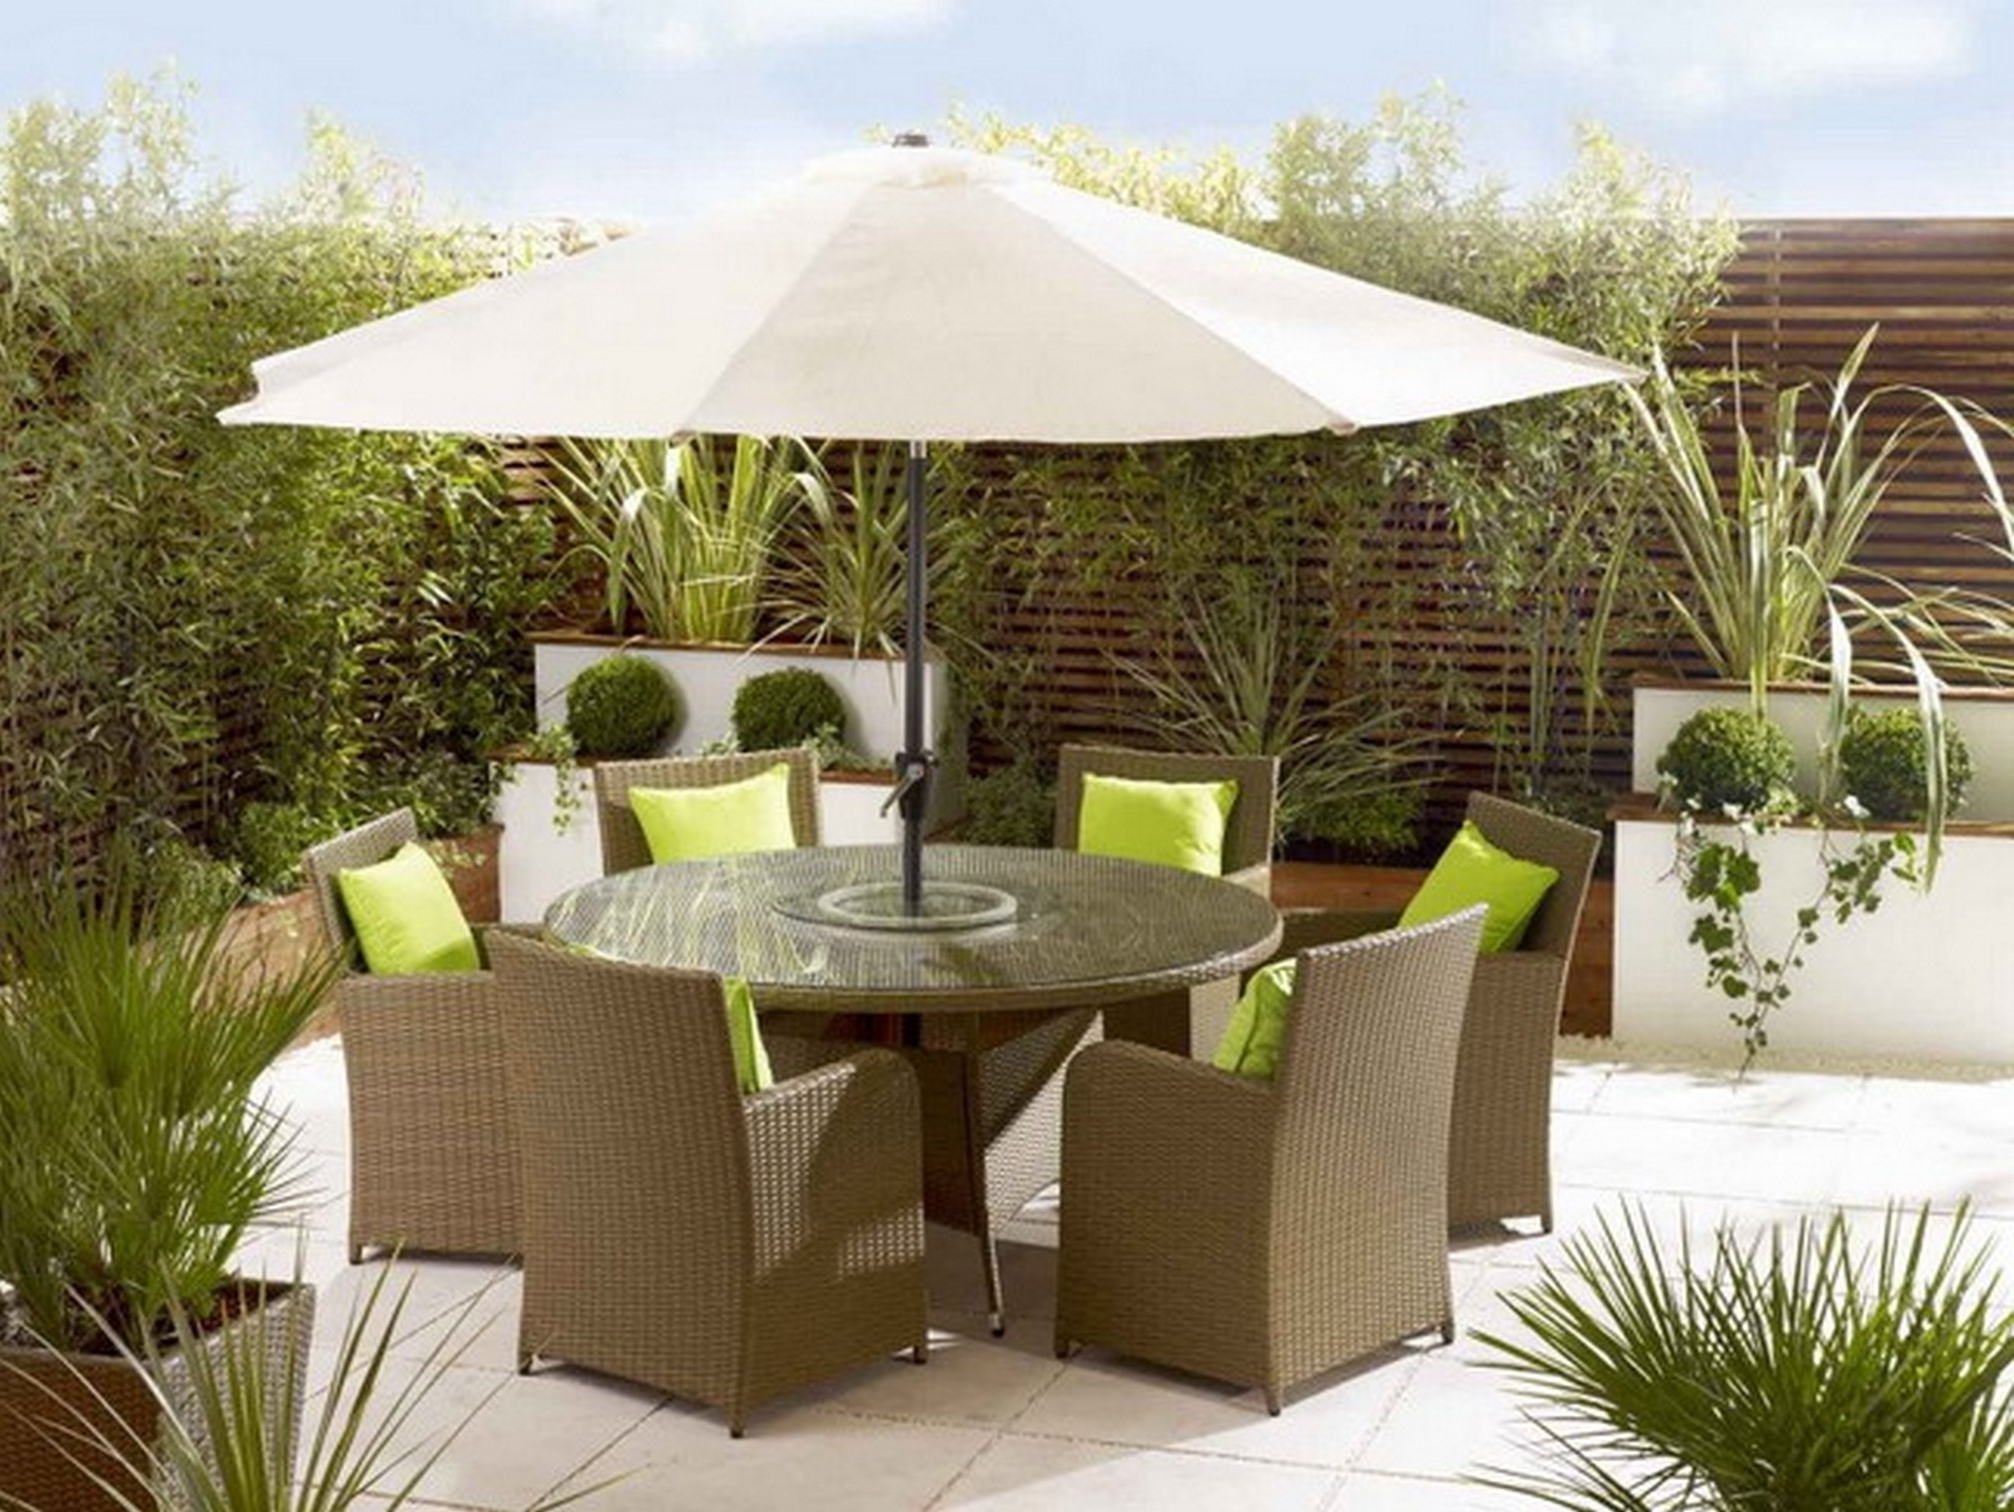 Free Standing Umbrellas For Patio For Best And Newest Free Standing Umbrellas For Patio (View 11 of 20)